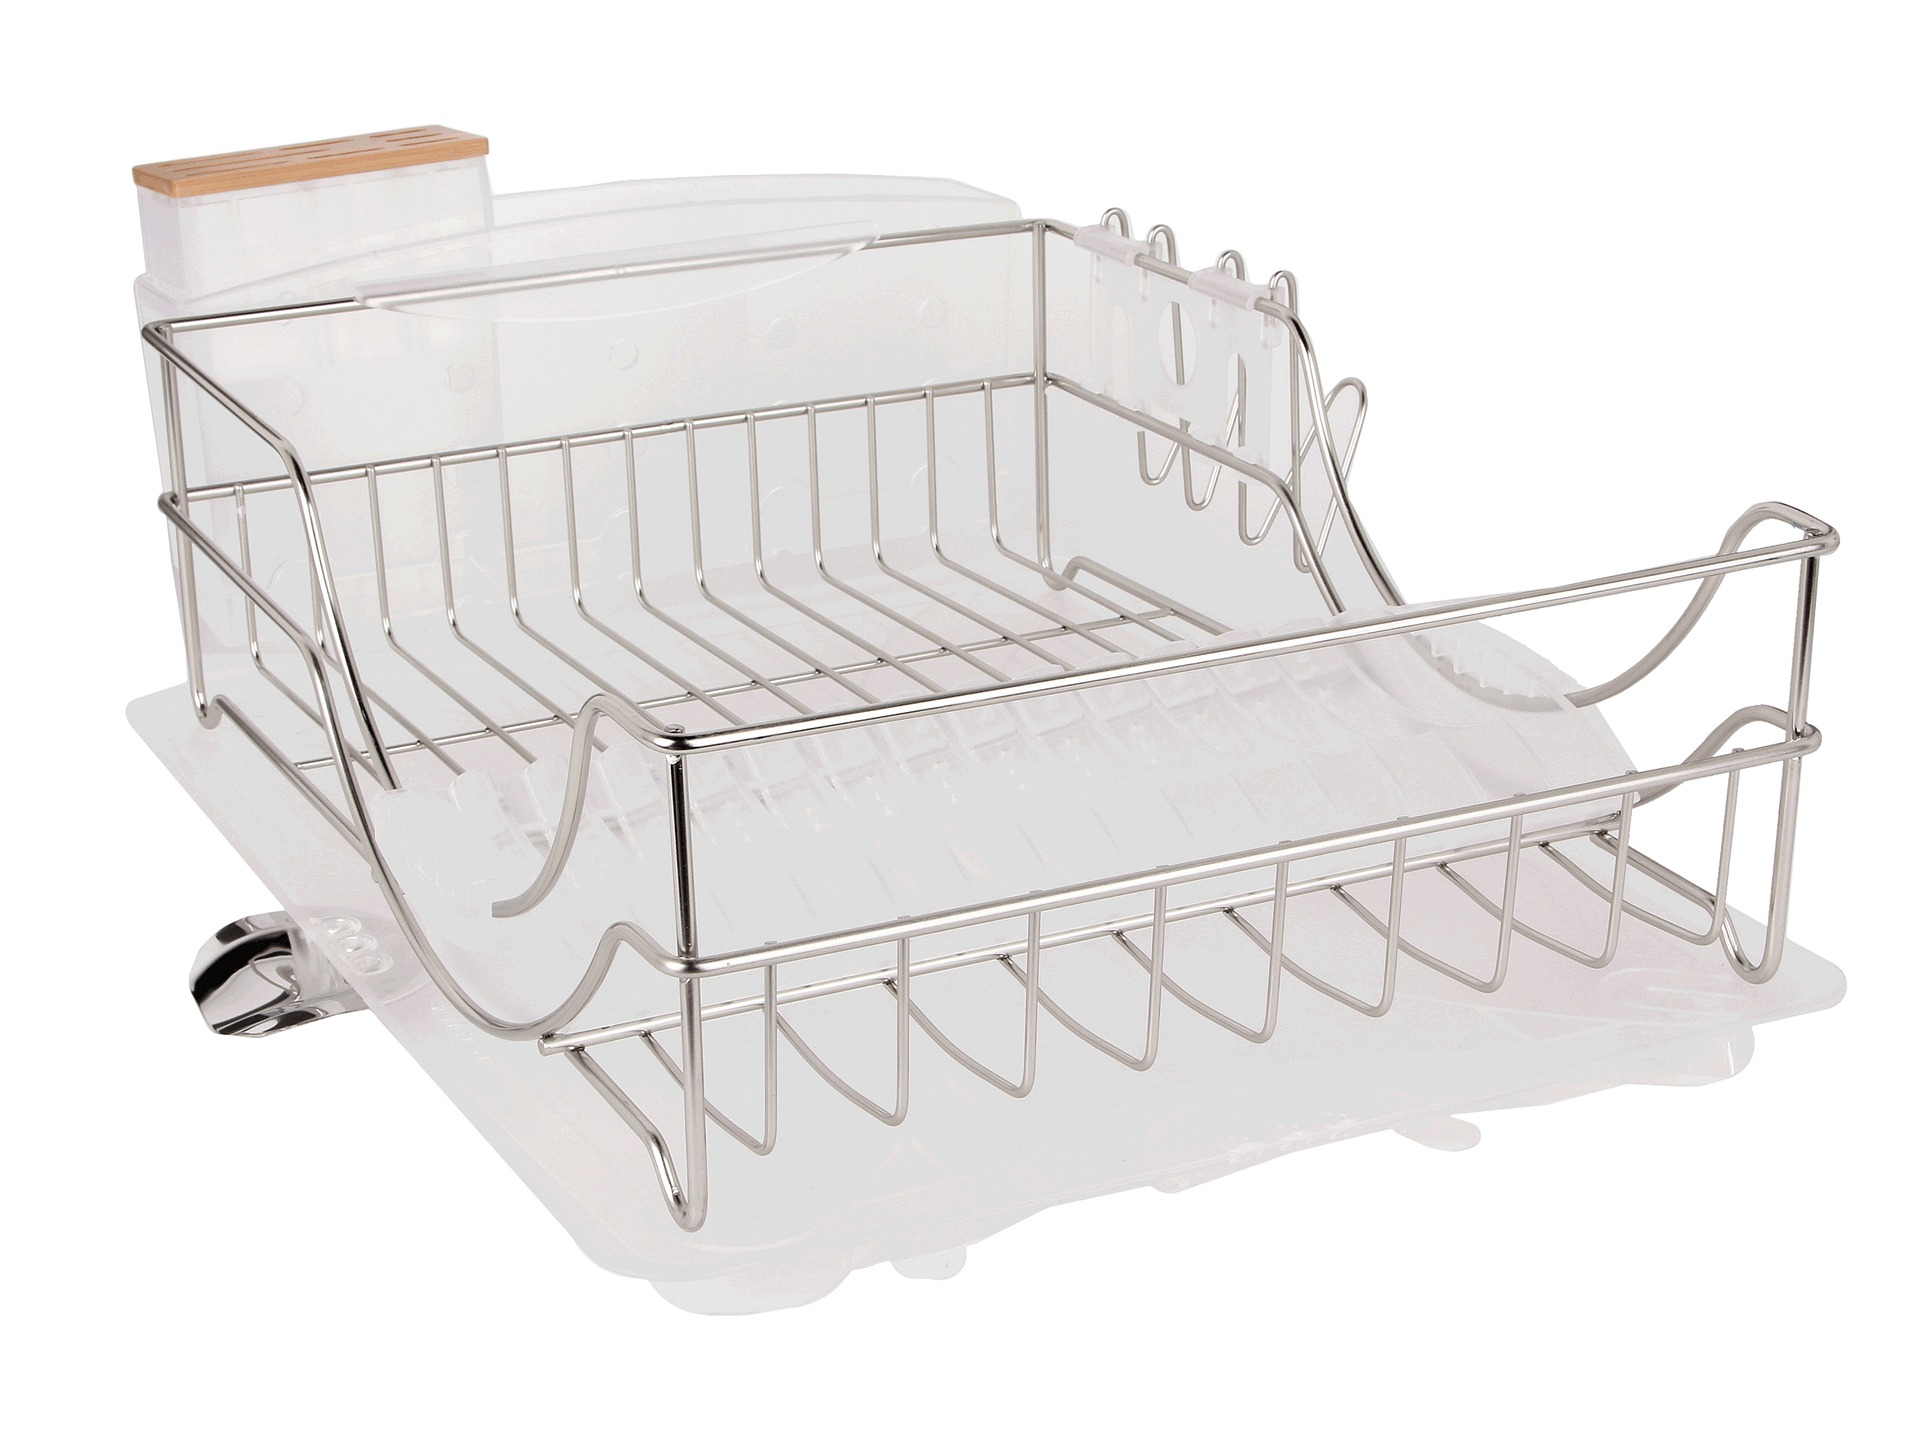 Ikea dish drying rack homesfeed for Kitchen drying rack ikea